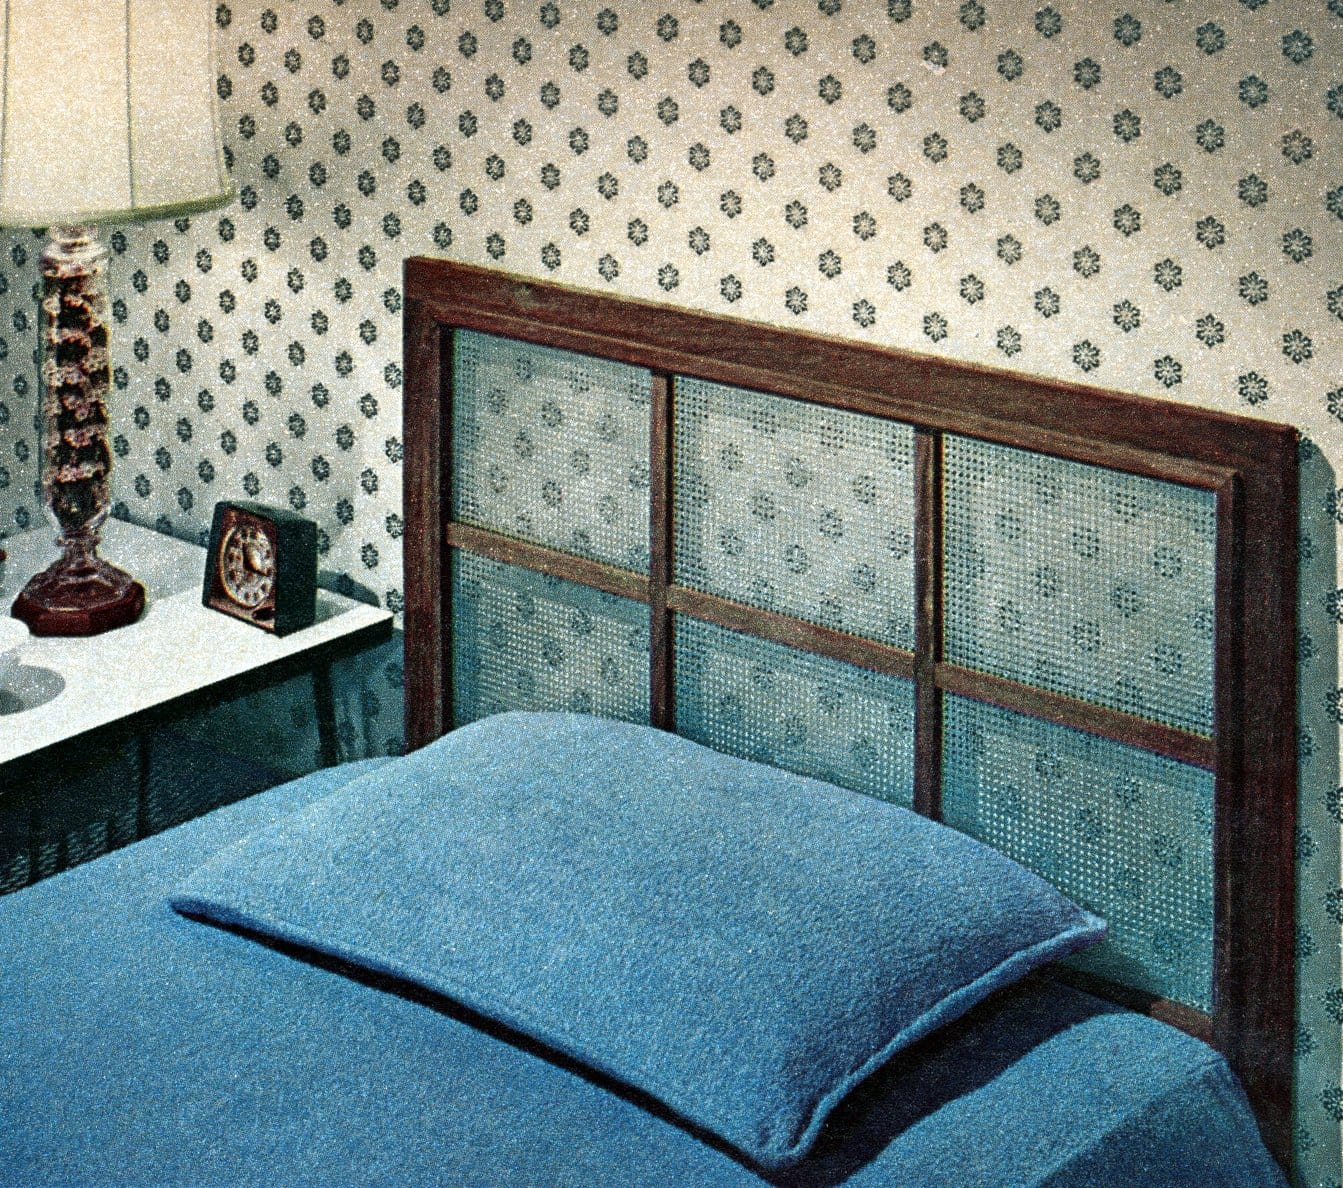 Vintage 1950s DIY window-screen style bed headboard